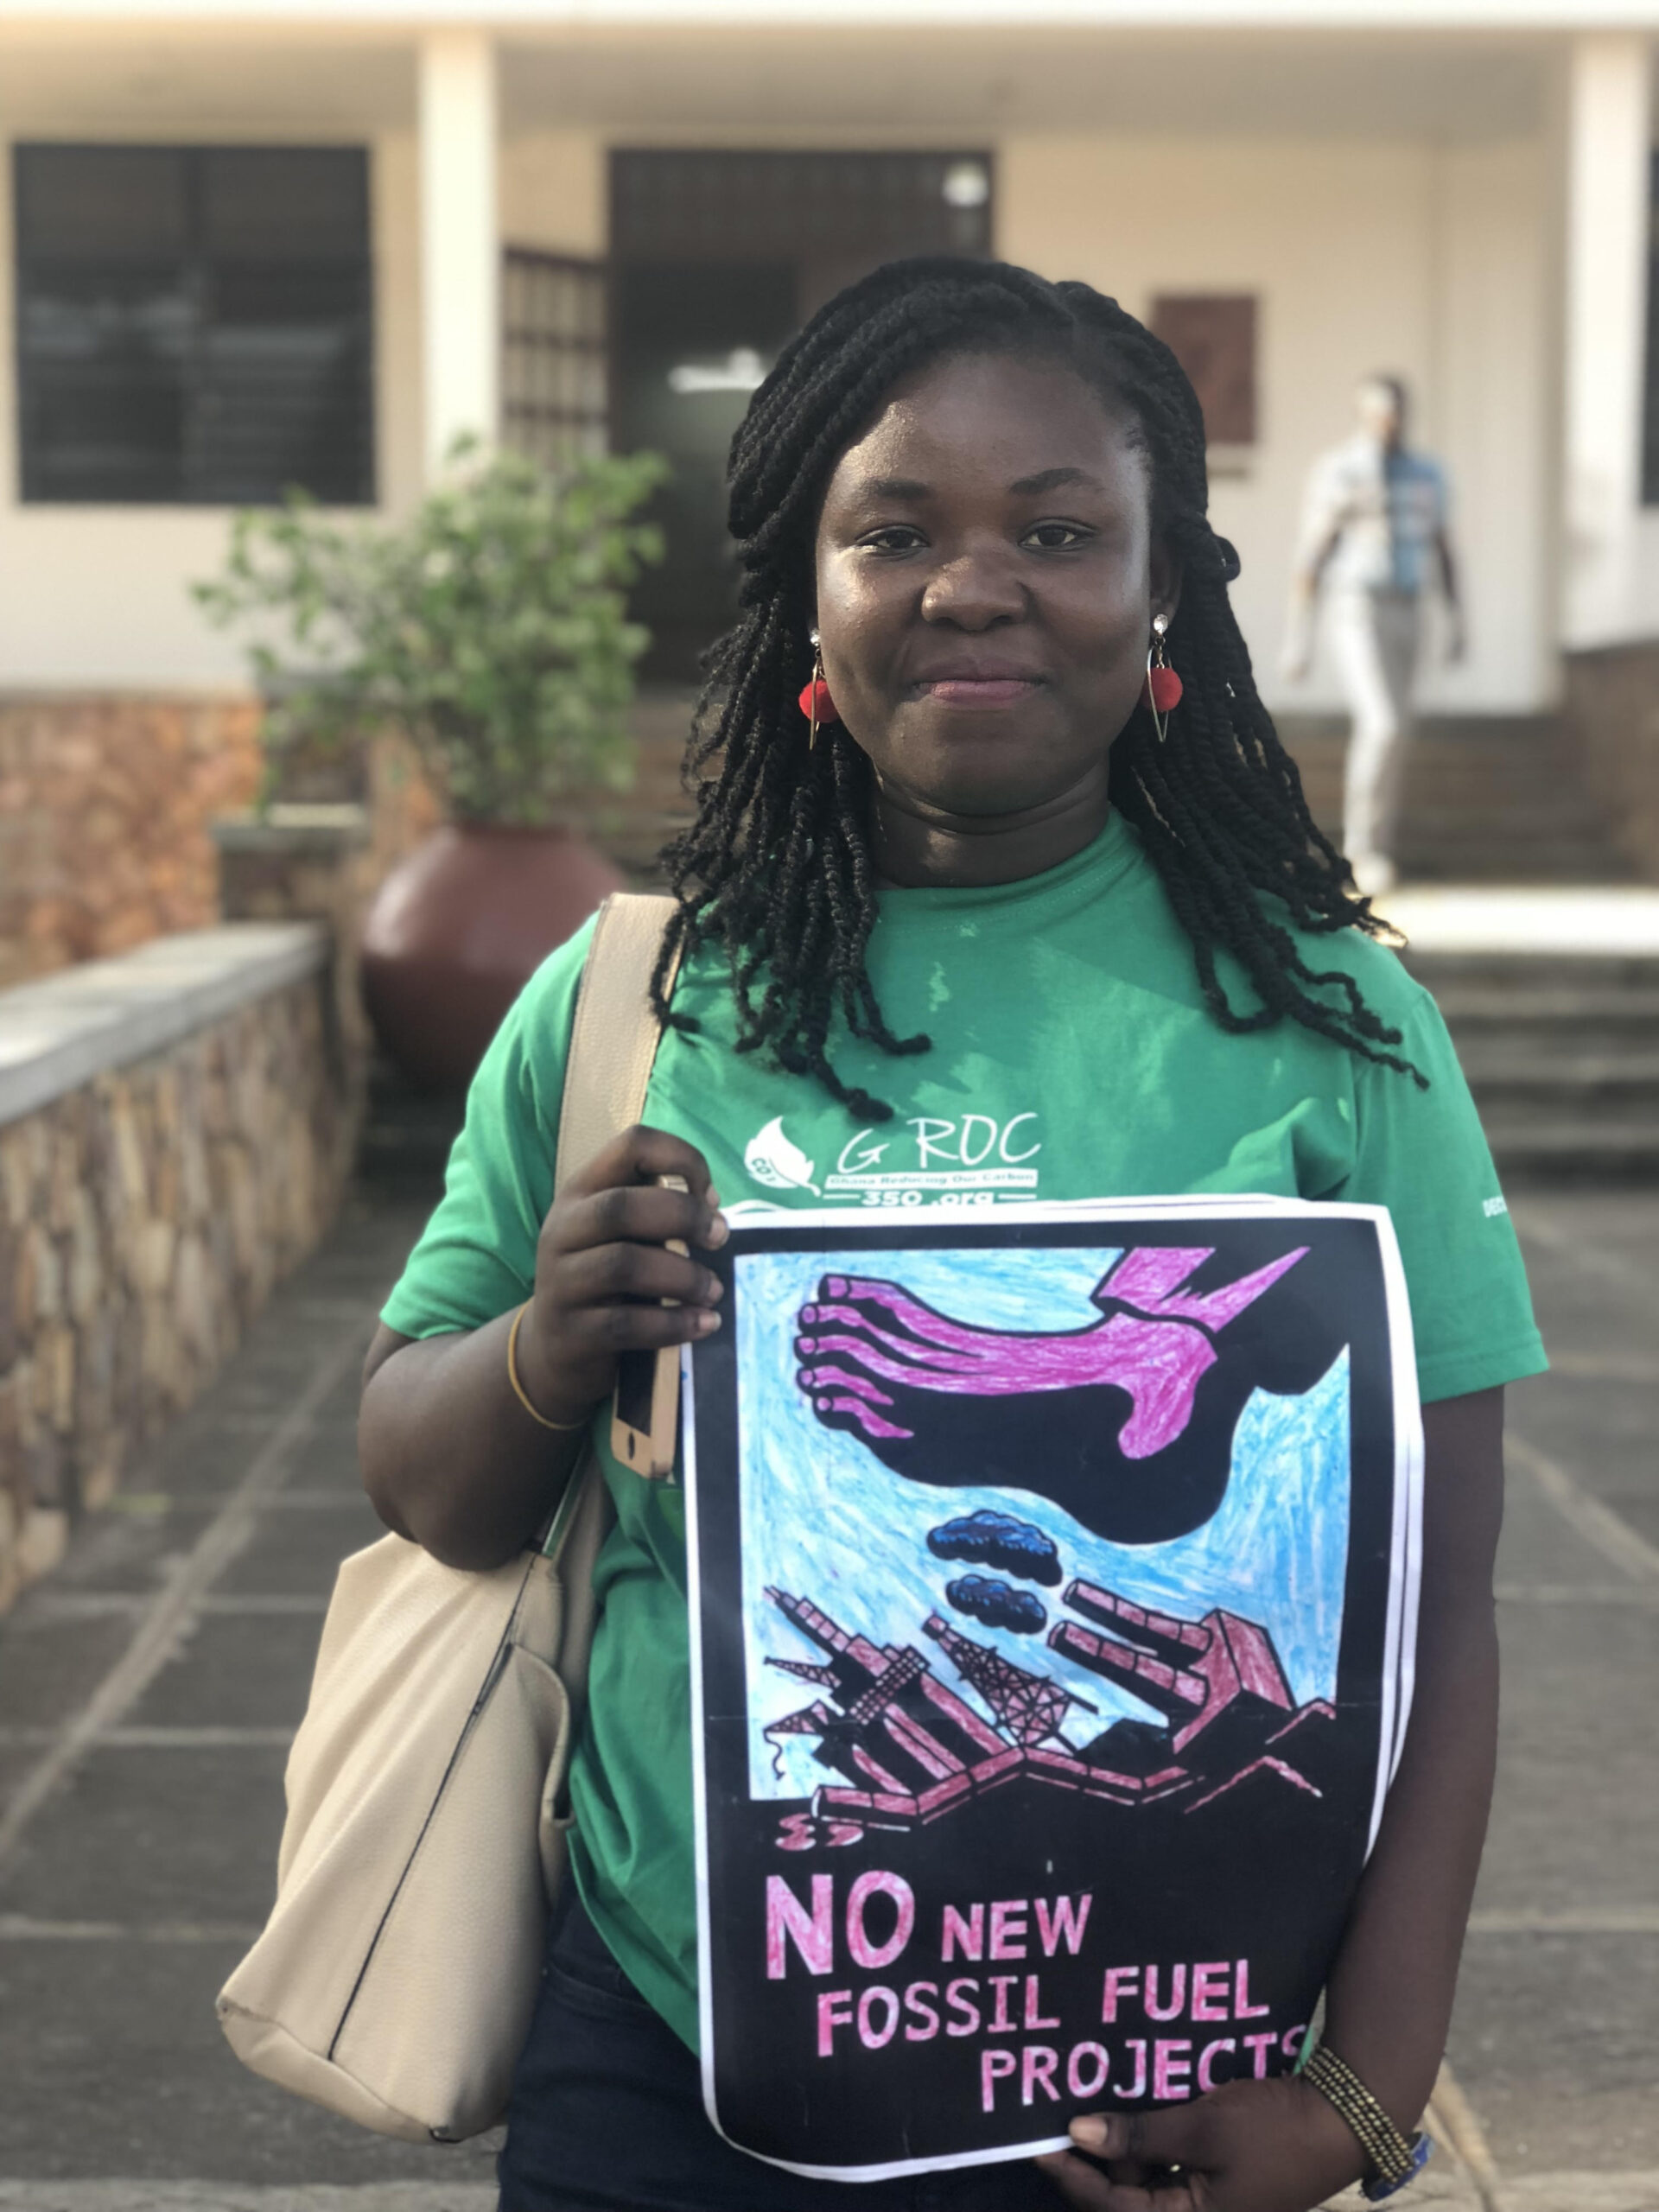 A young woman climate activist looks forward with a cloth bag on her shoulder.